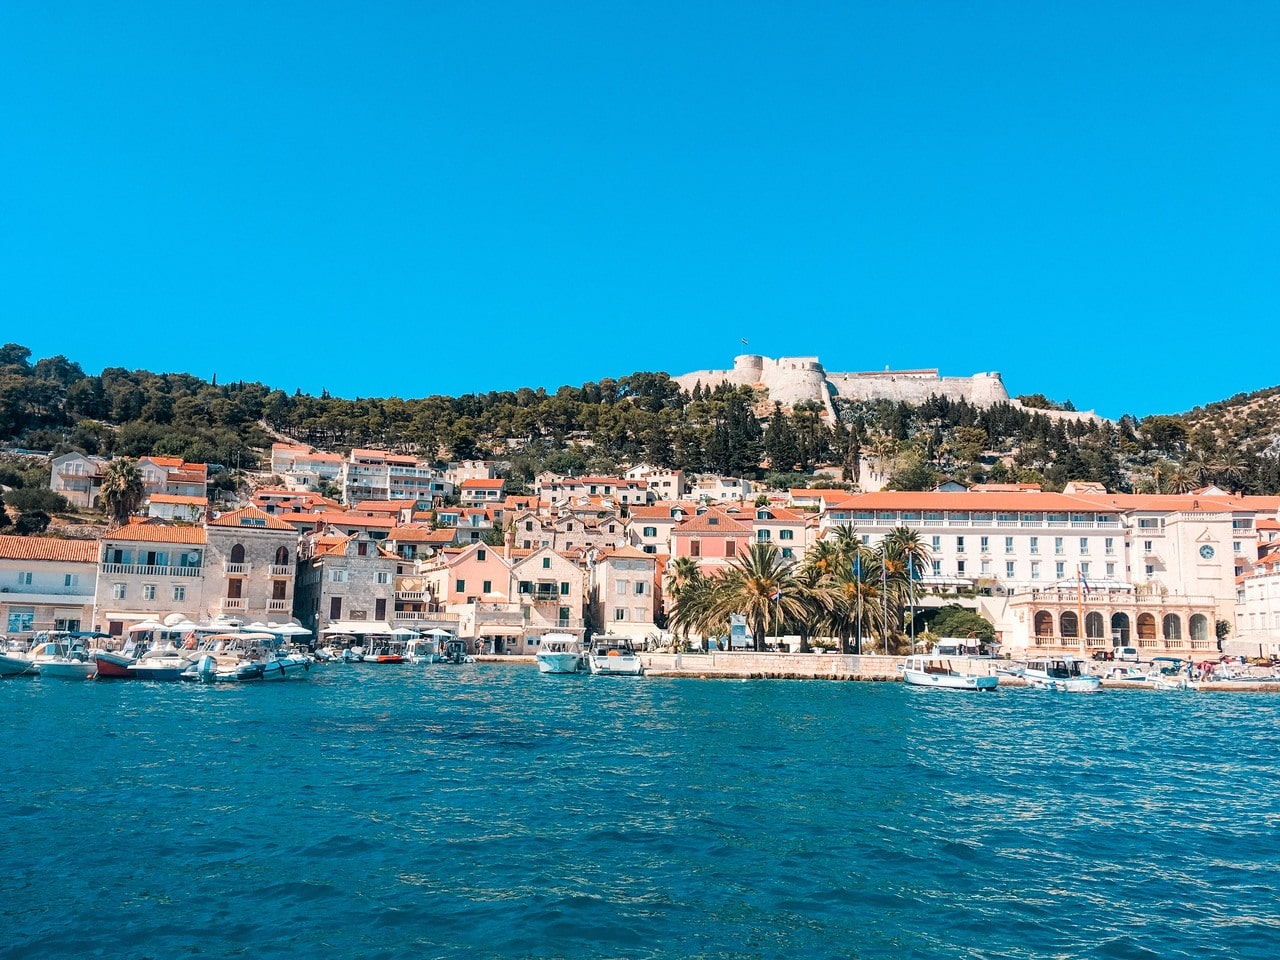 View of Hvar Town during the day from the ferry from Split.